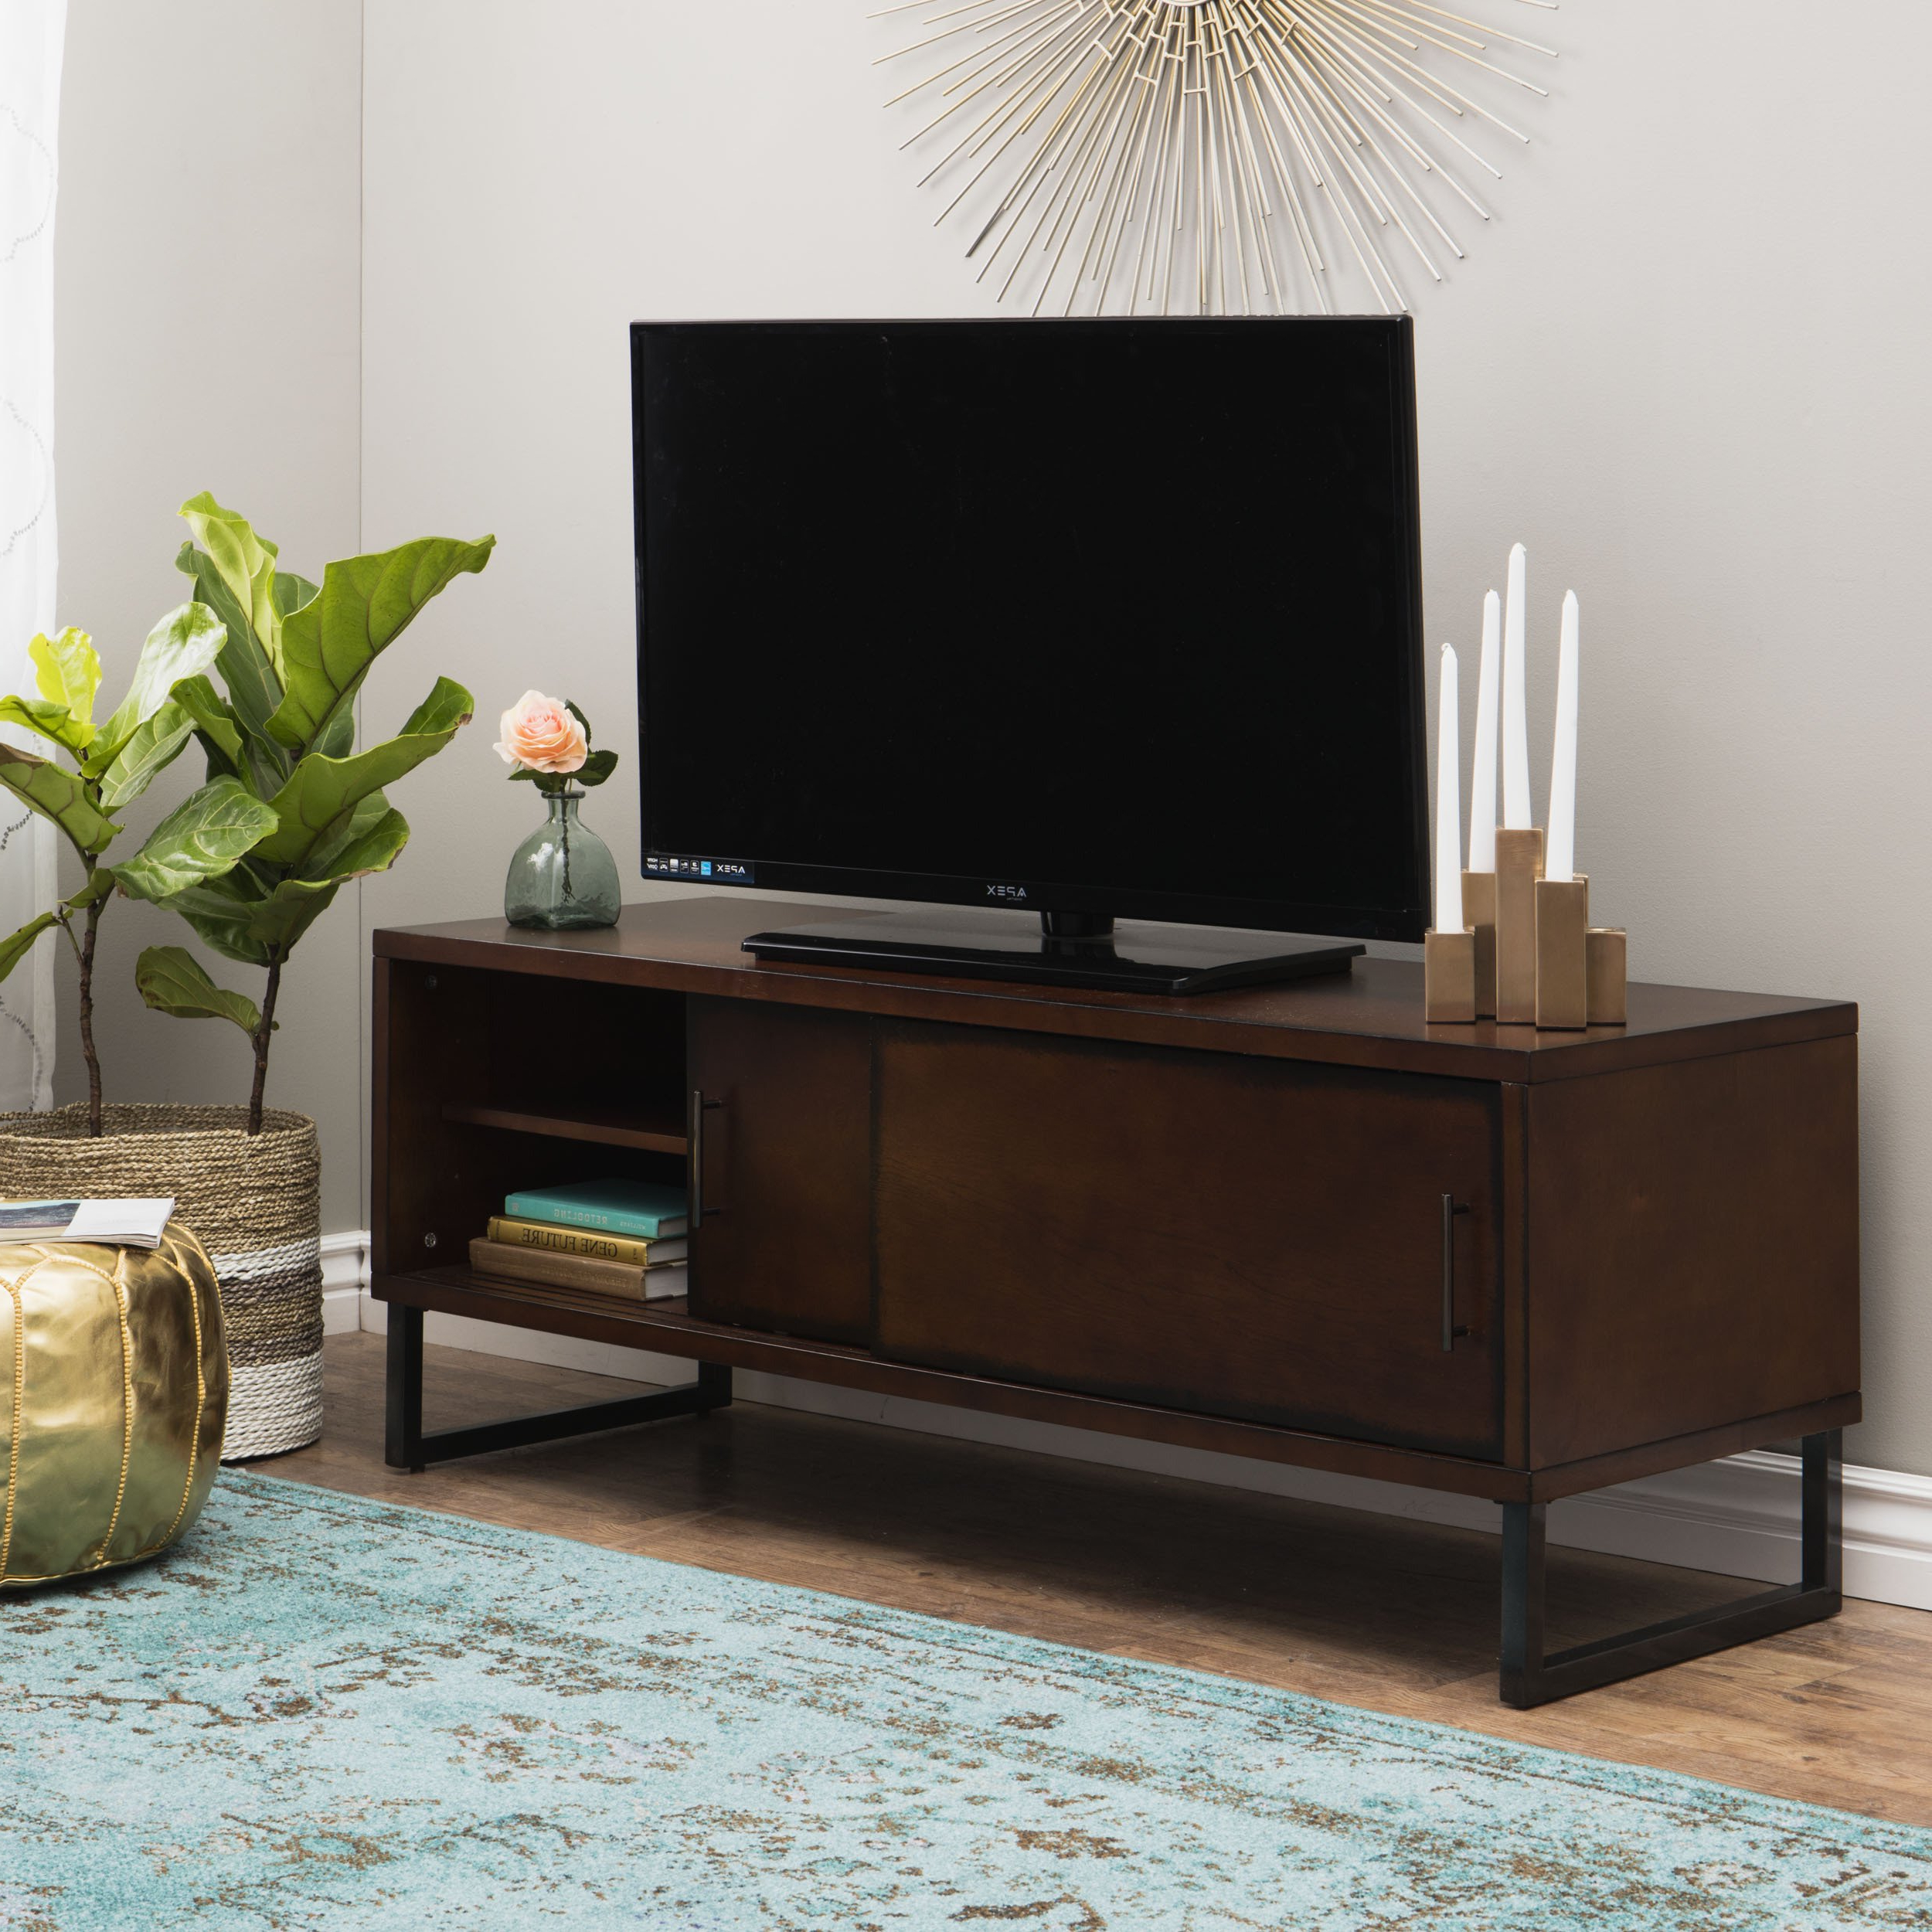 Shop Carbon Loft 54 Inch Breckenridge Walnut Entertainment Center With Regard To 2017 Rowan 74 Inch Tv Stands (View 13 of 20)